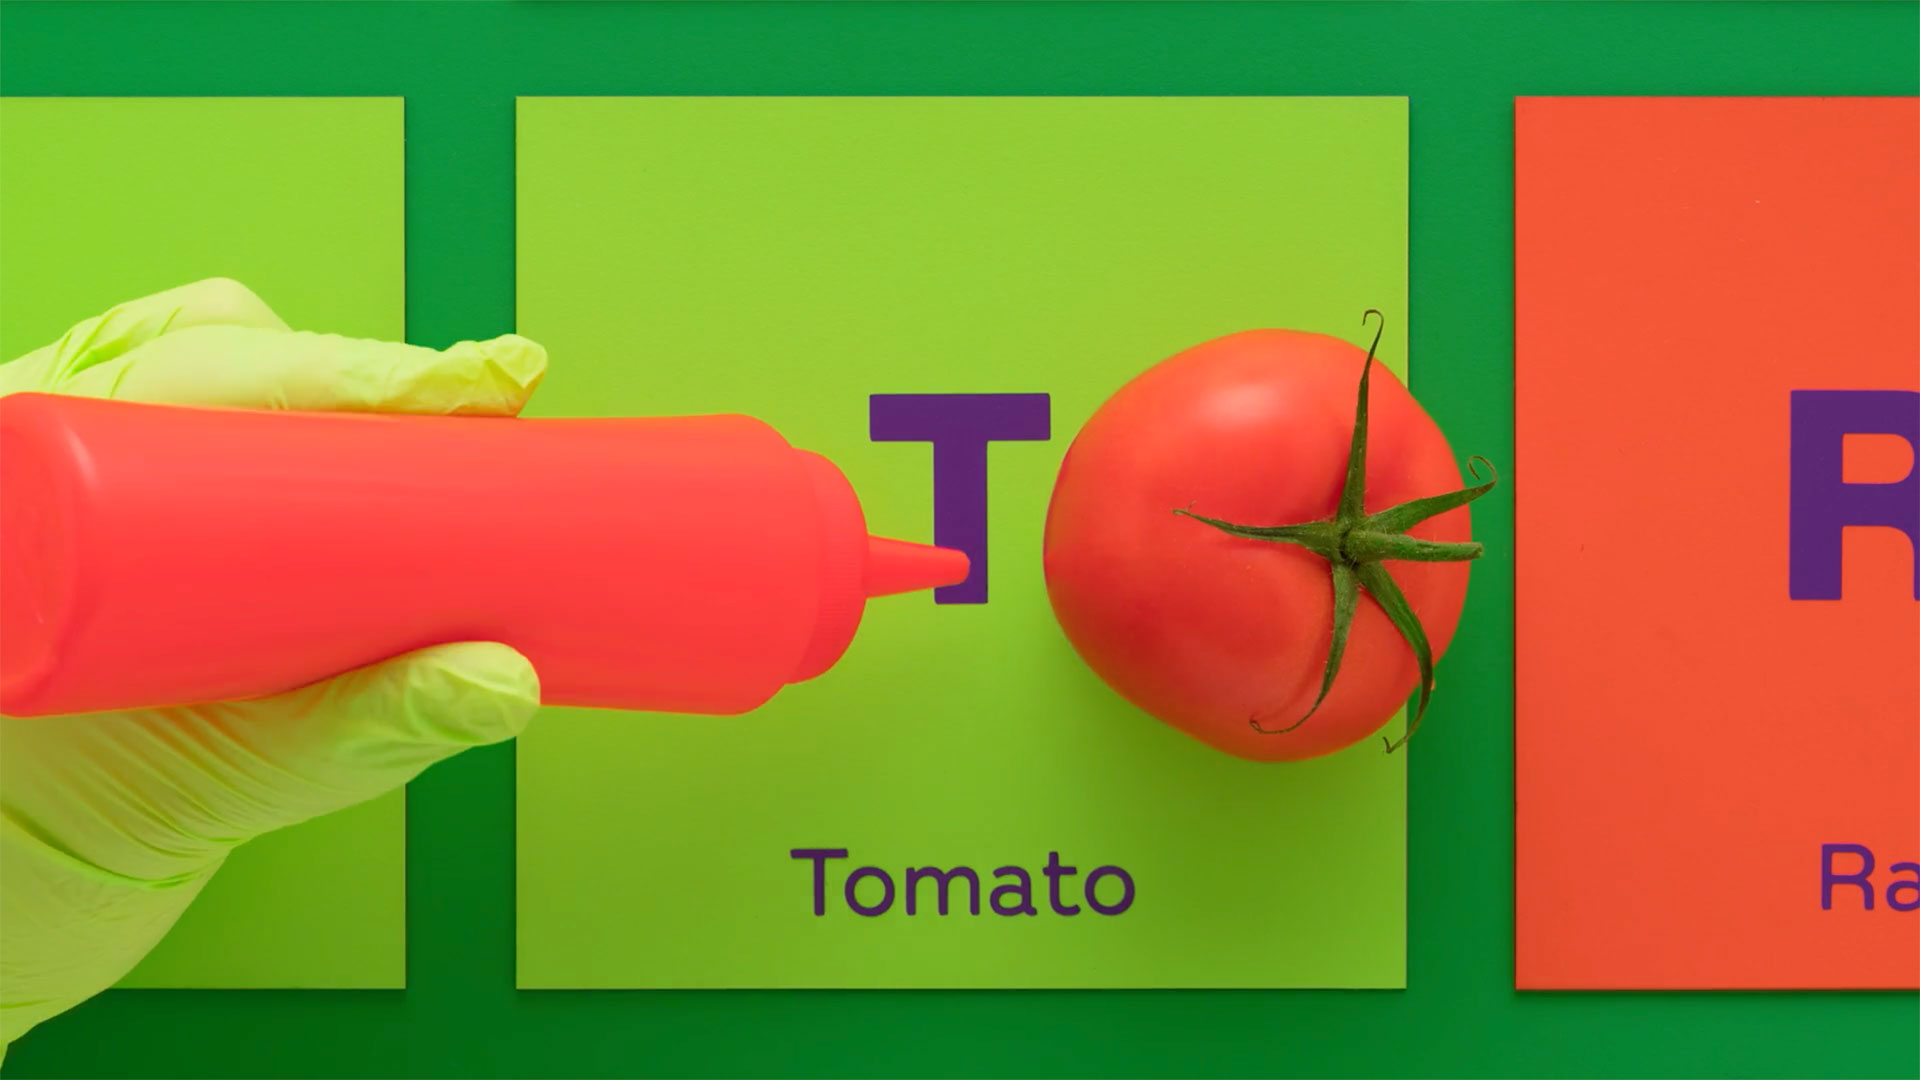 Subway squeezing a tomato out of a bottle